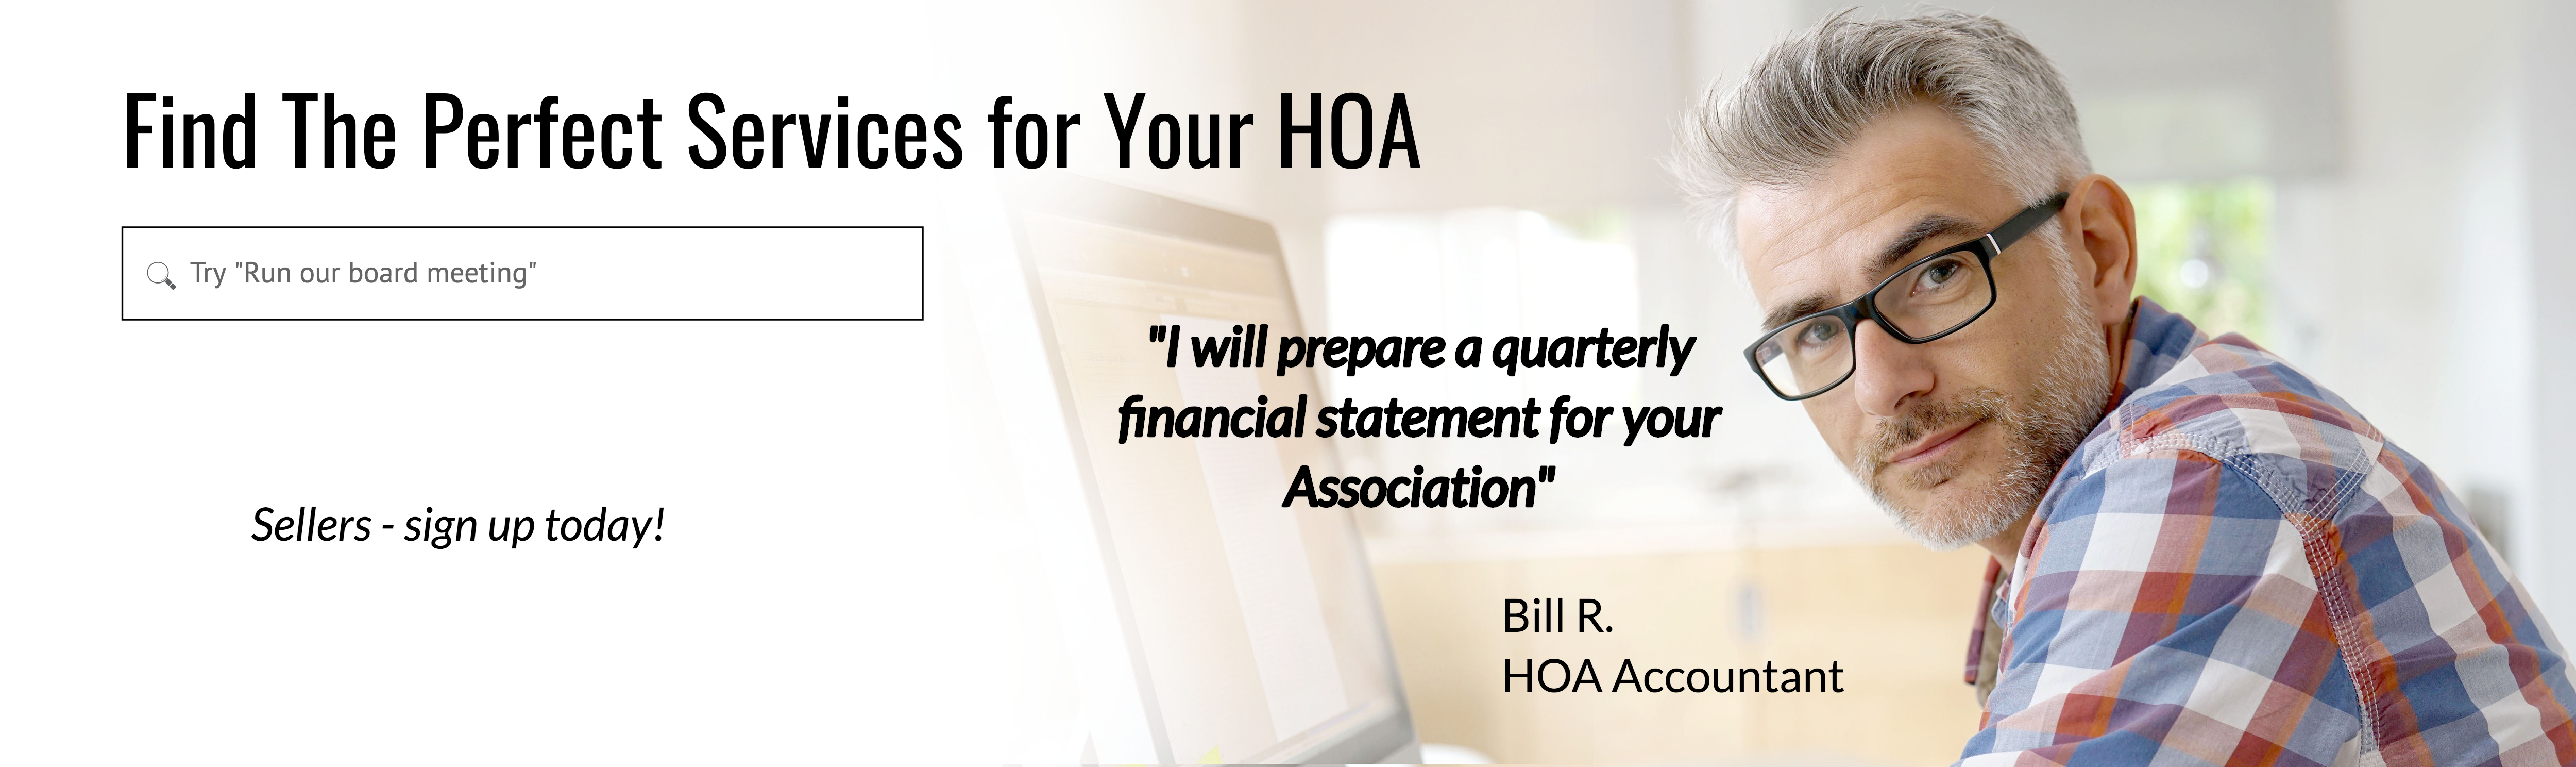 HOA services cover